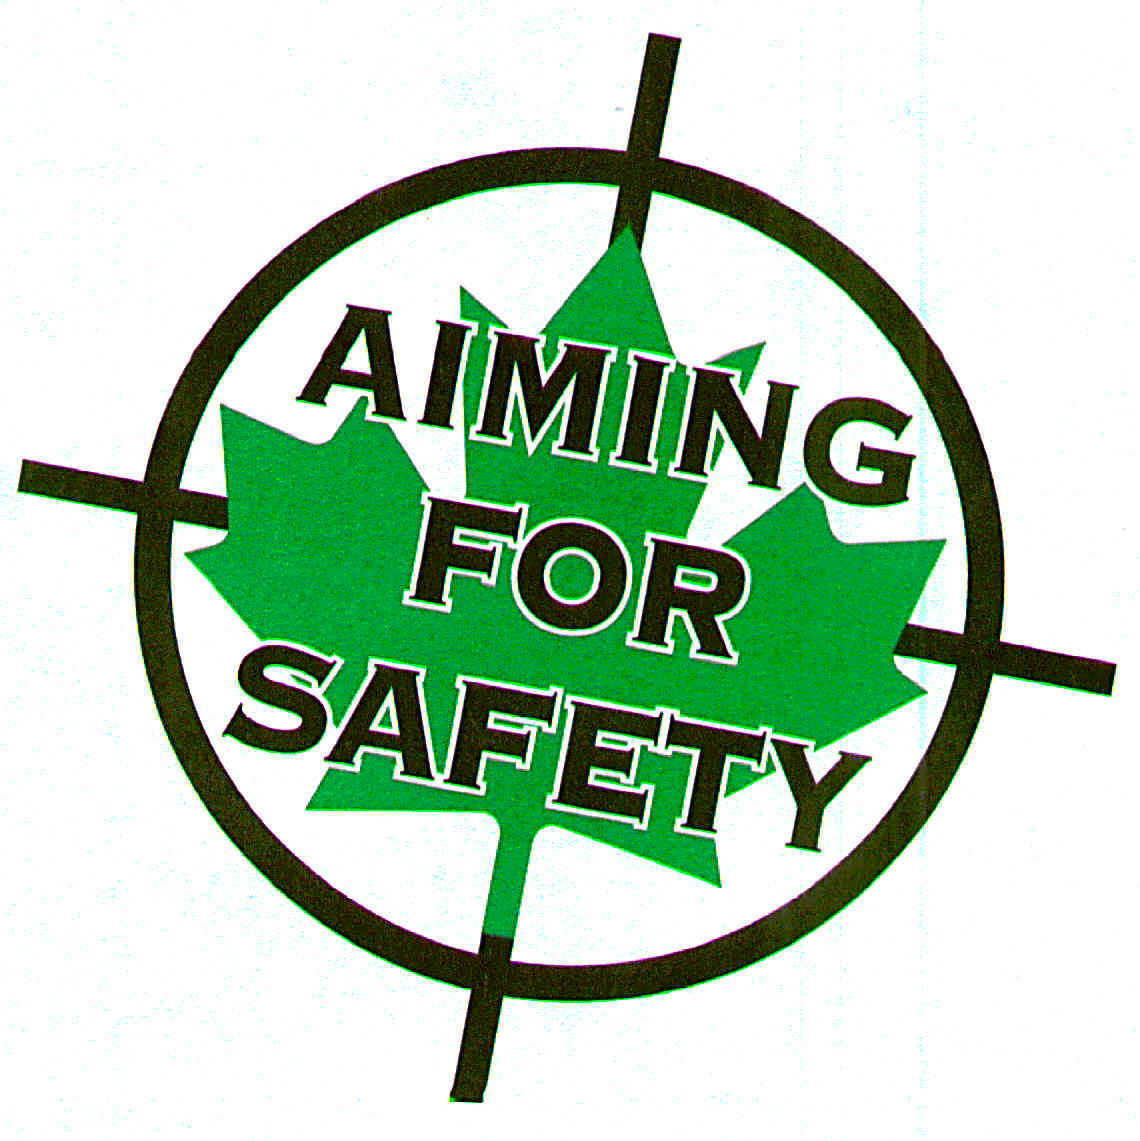 Canadian Firearms Safety Course at White City Regional Library